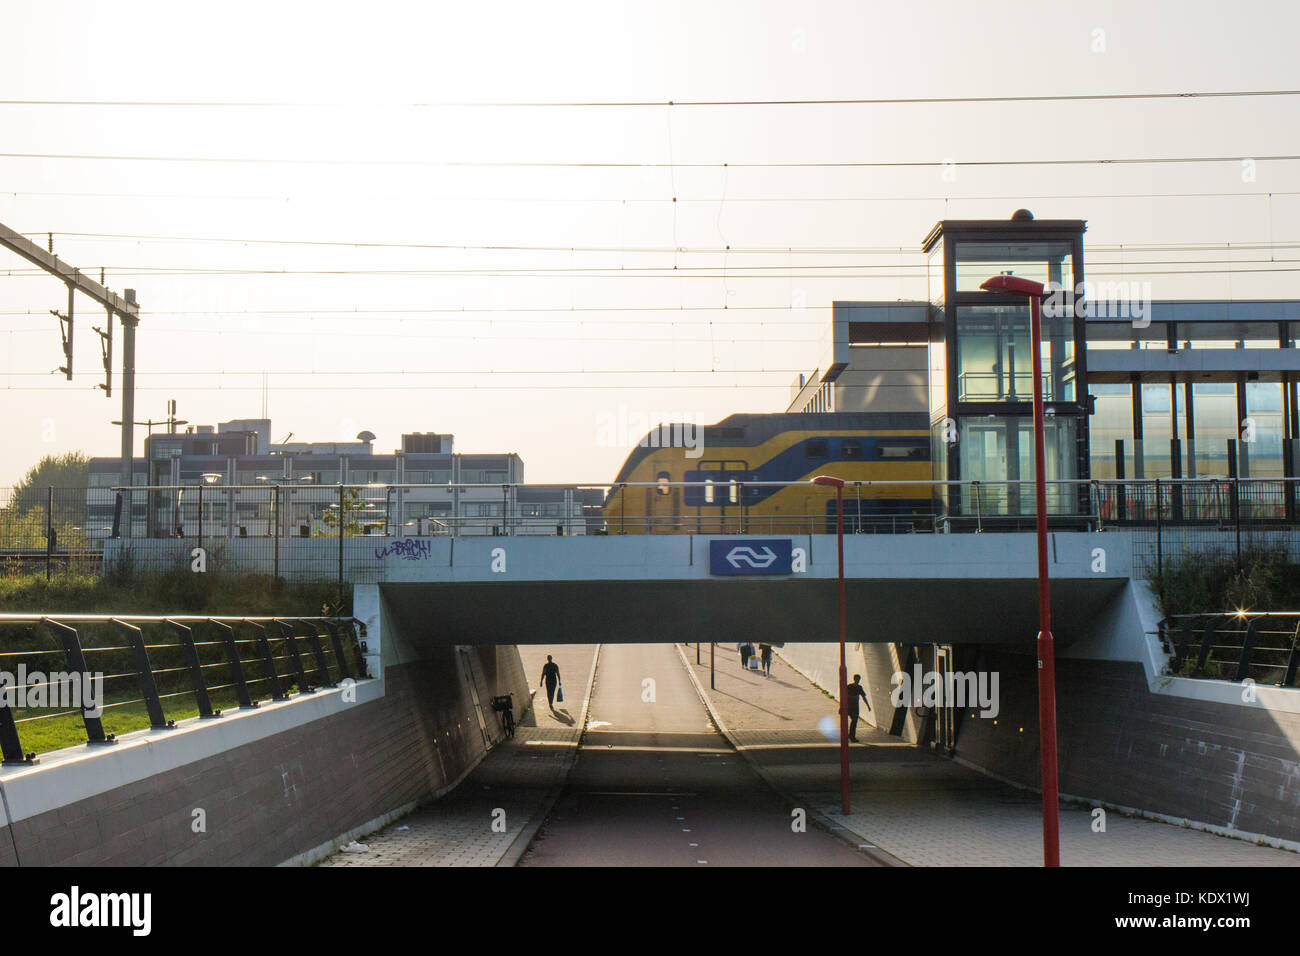 NS - trein - Stock Image